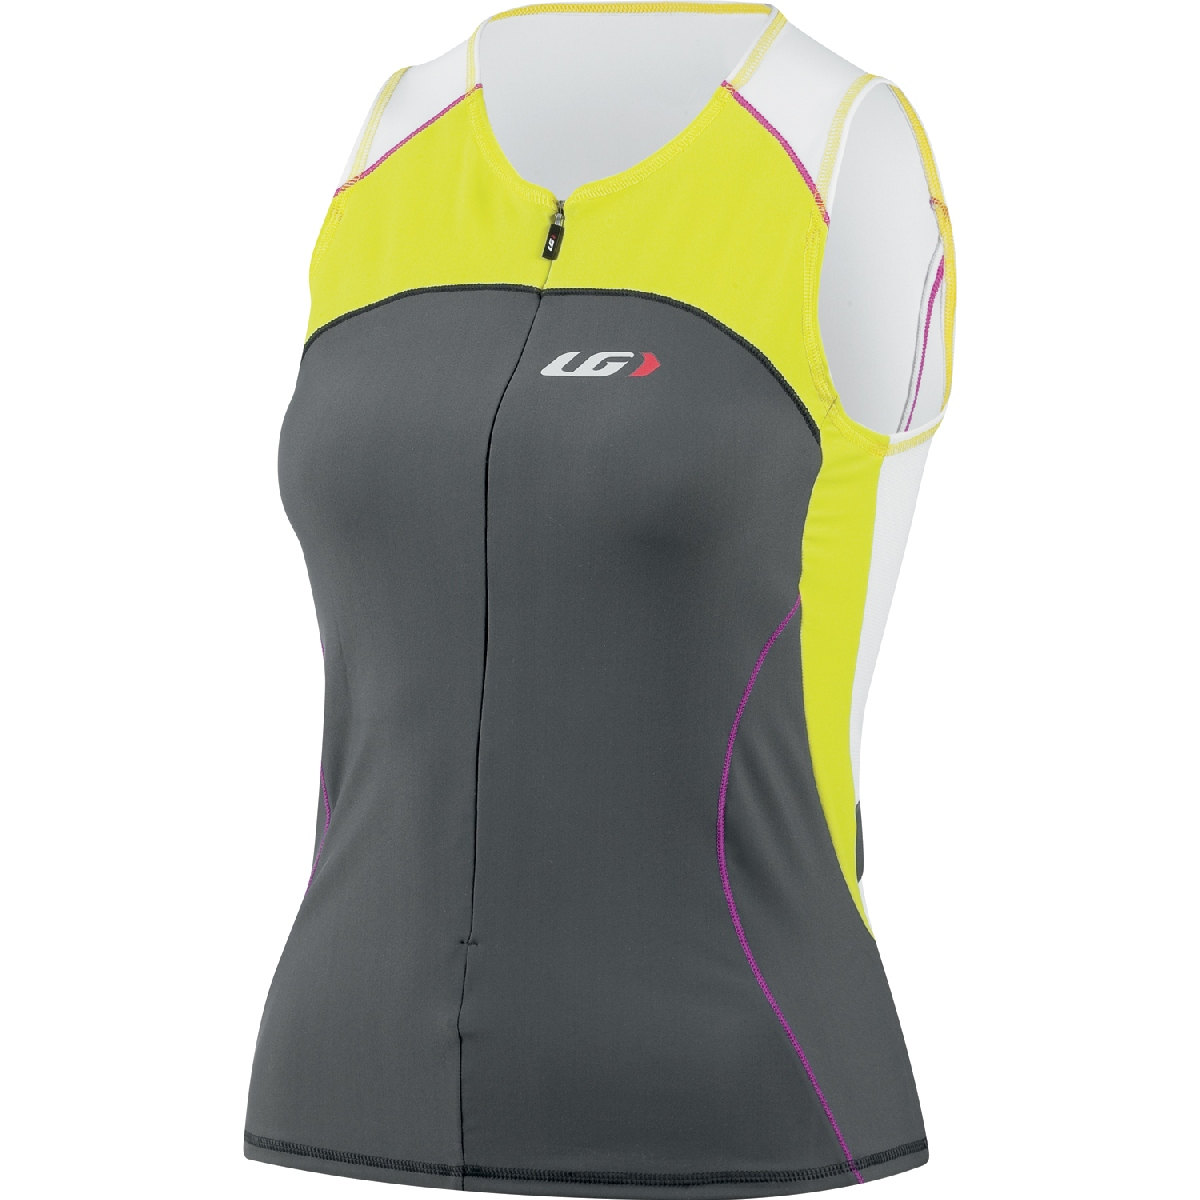 Louis Garneau Comp Sleeveless Triathlon Top Women's Size S SulfurSpring U.S.A. & Canada